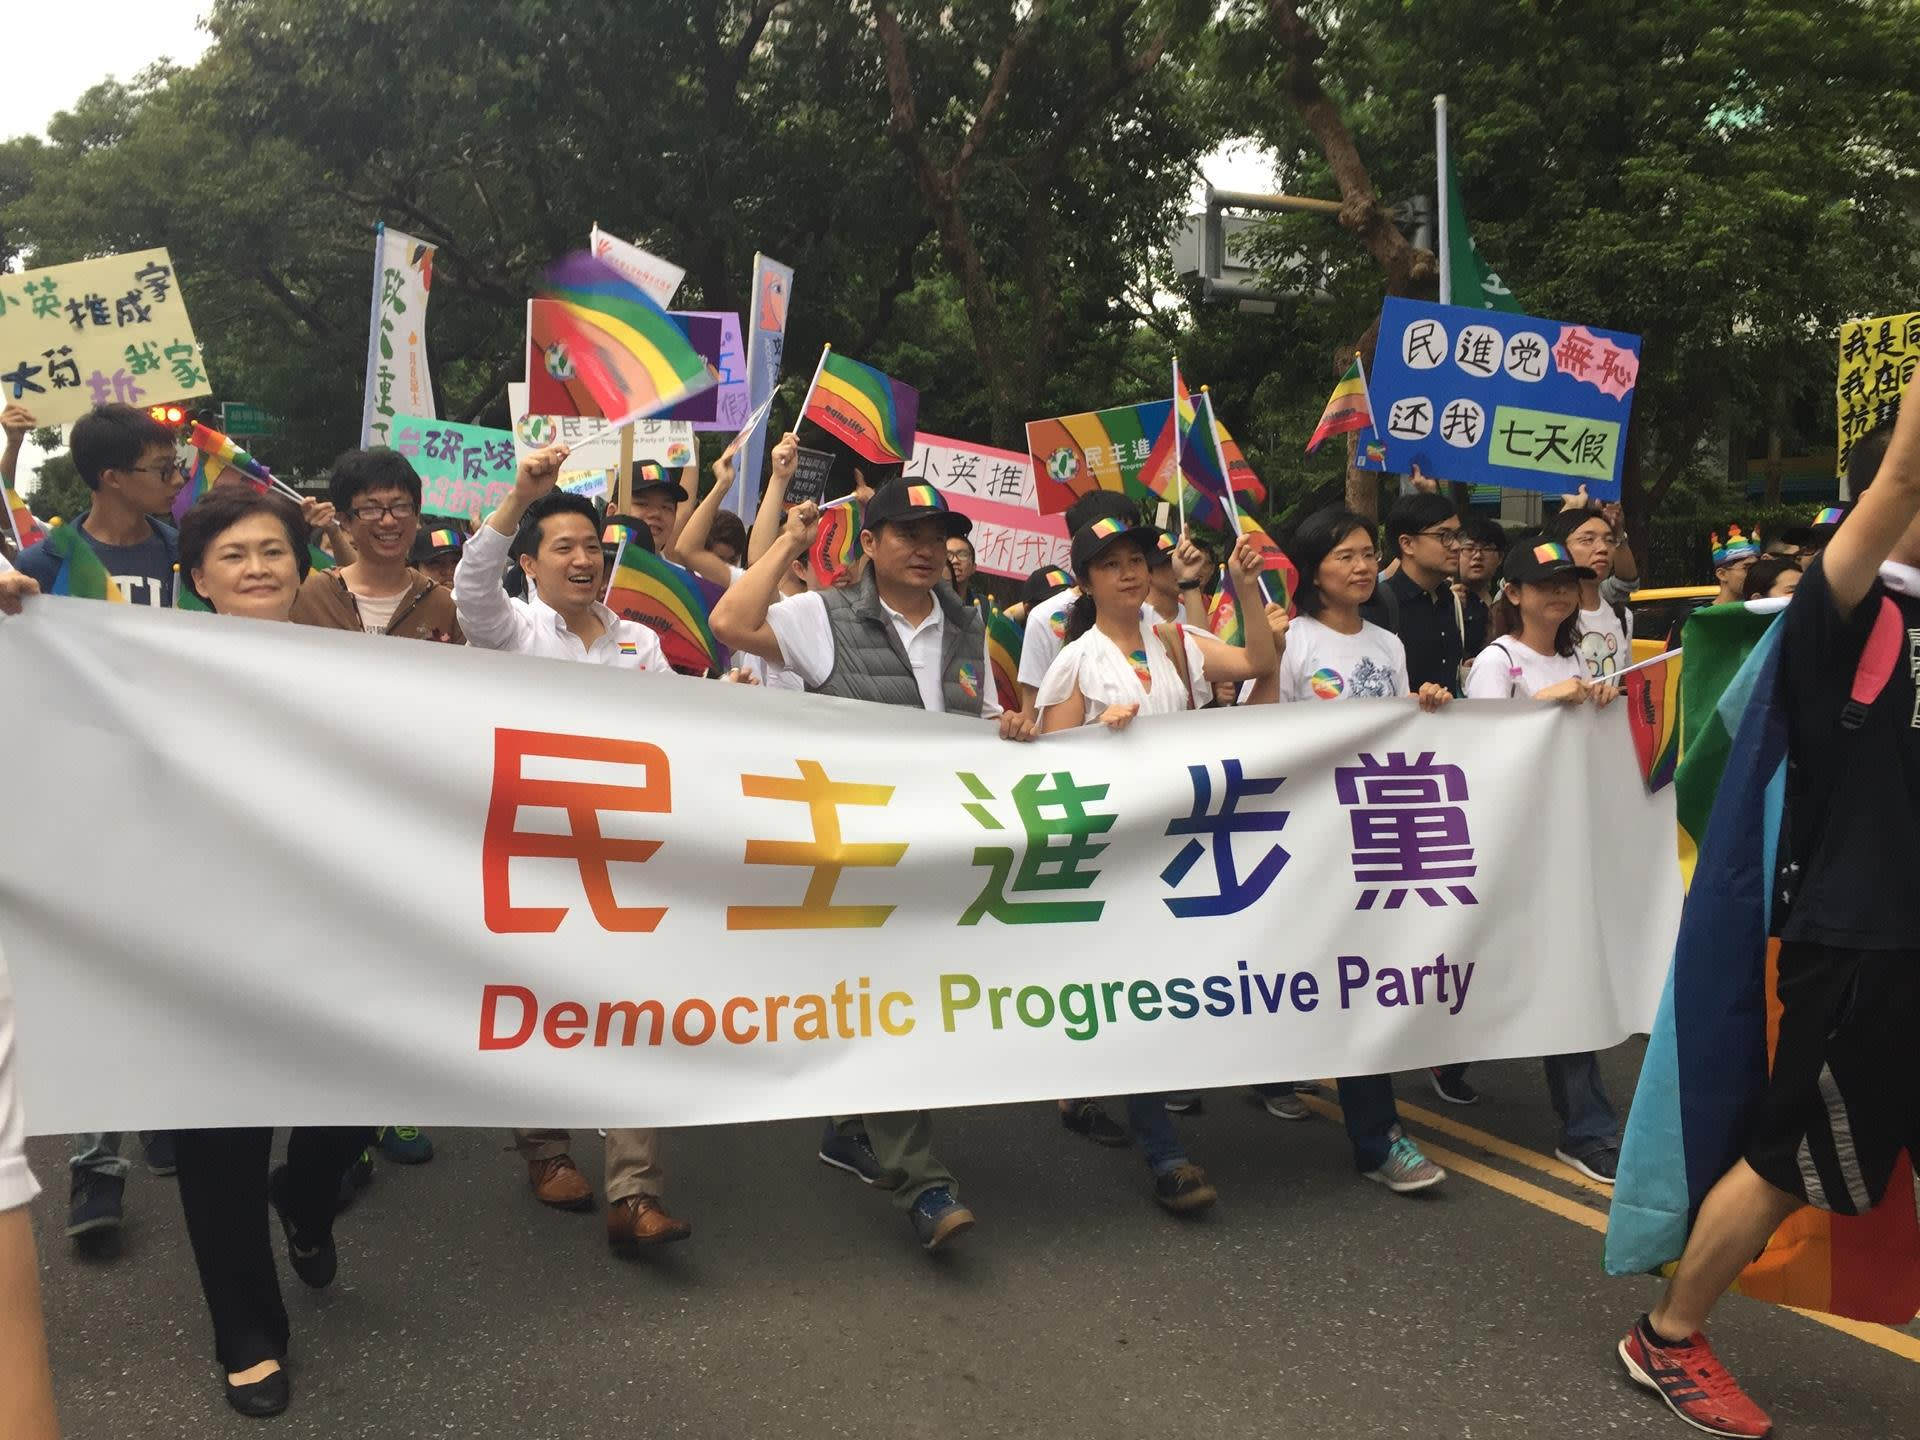 Stunned by a suicide, Taiwan could pass Asia's first same-sex